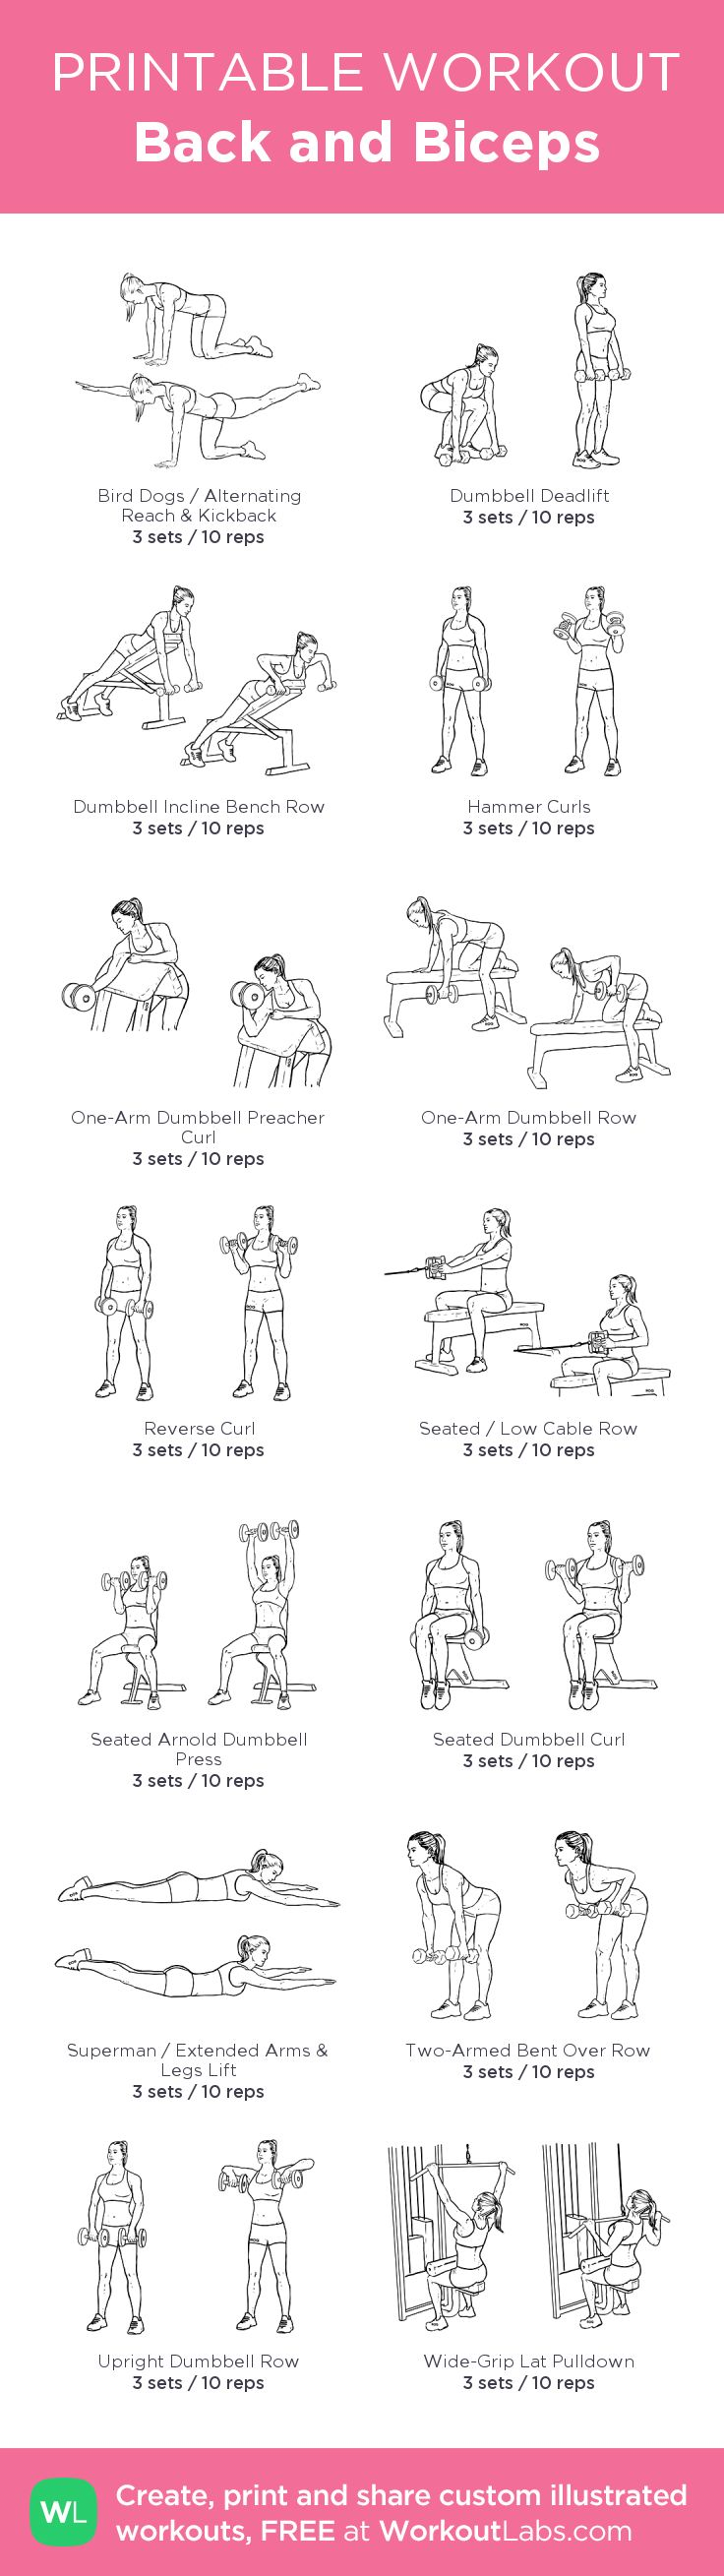 Back and Biceps: my visual workout created at WorkoutLabs.com • Click through to customize and download as a FREE PDF! #customworkout